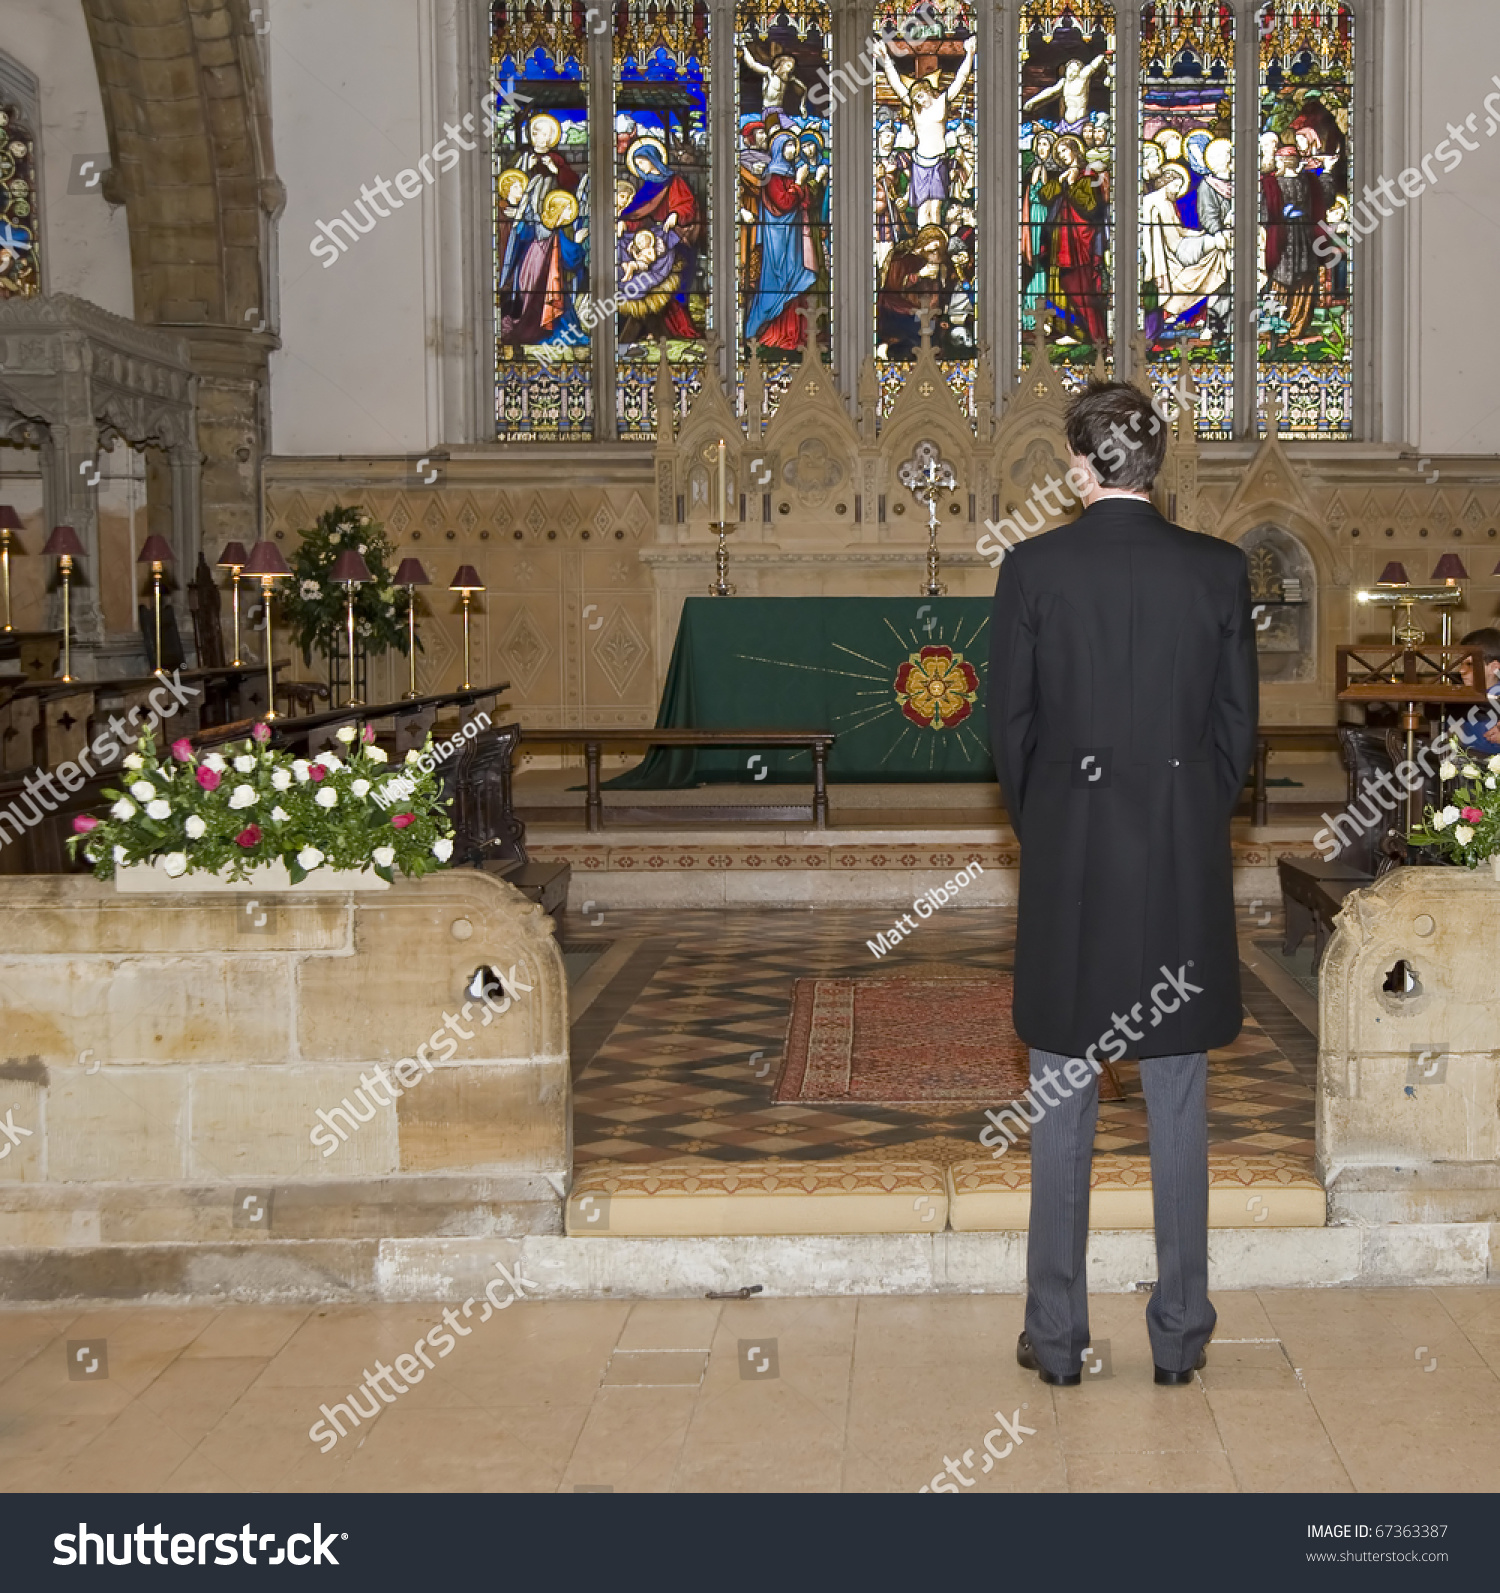 Window Wedding Altar: Groom Waiting In Church For Arrival Of Bride With Altar